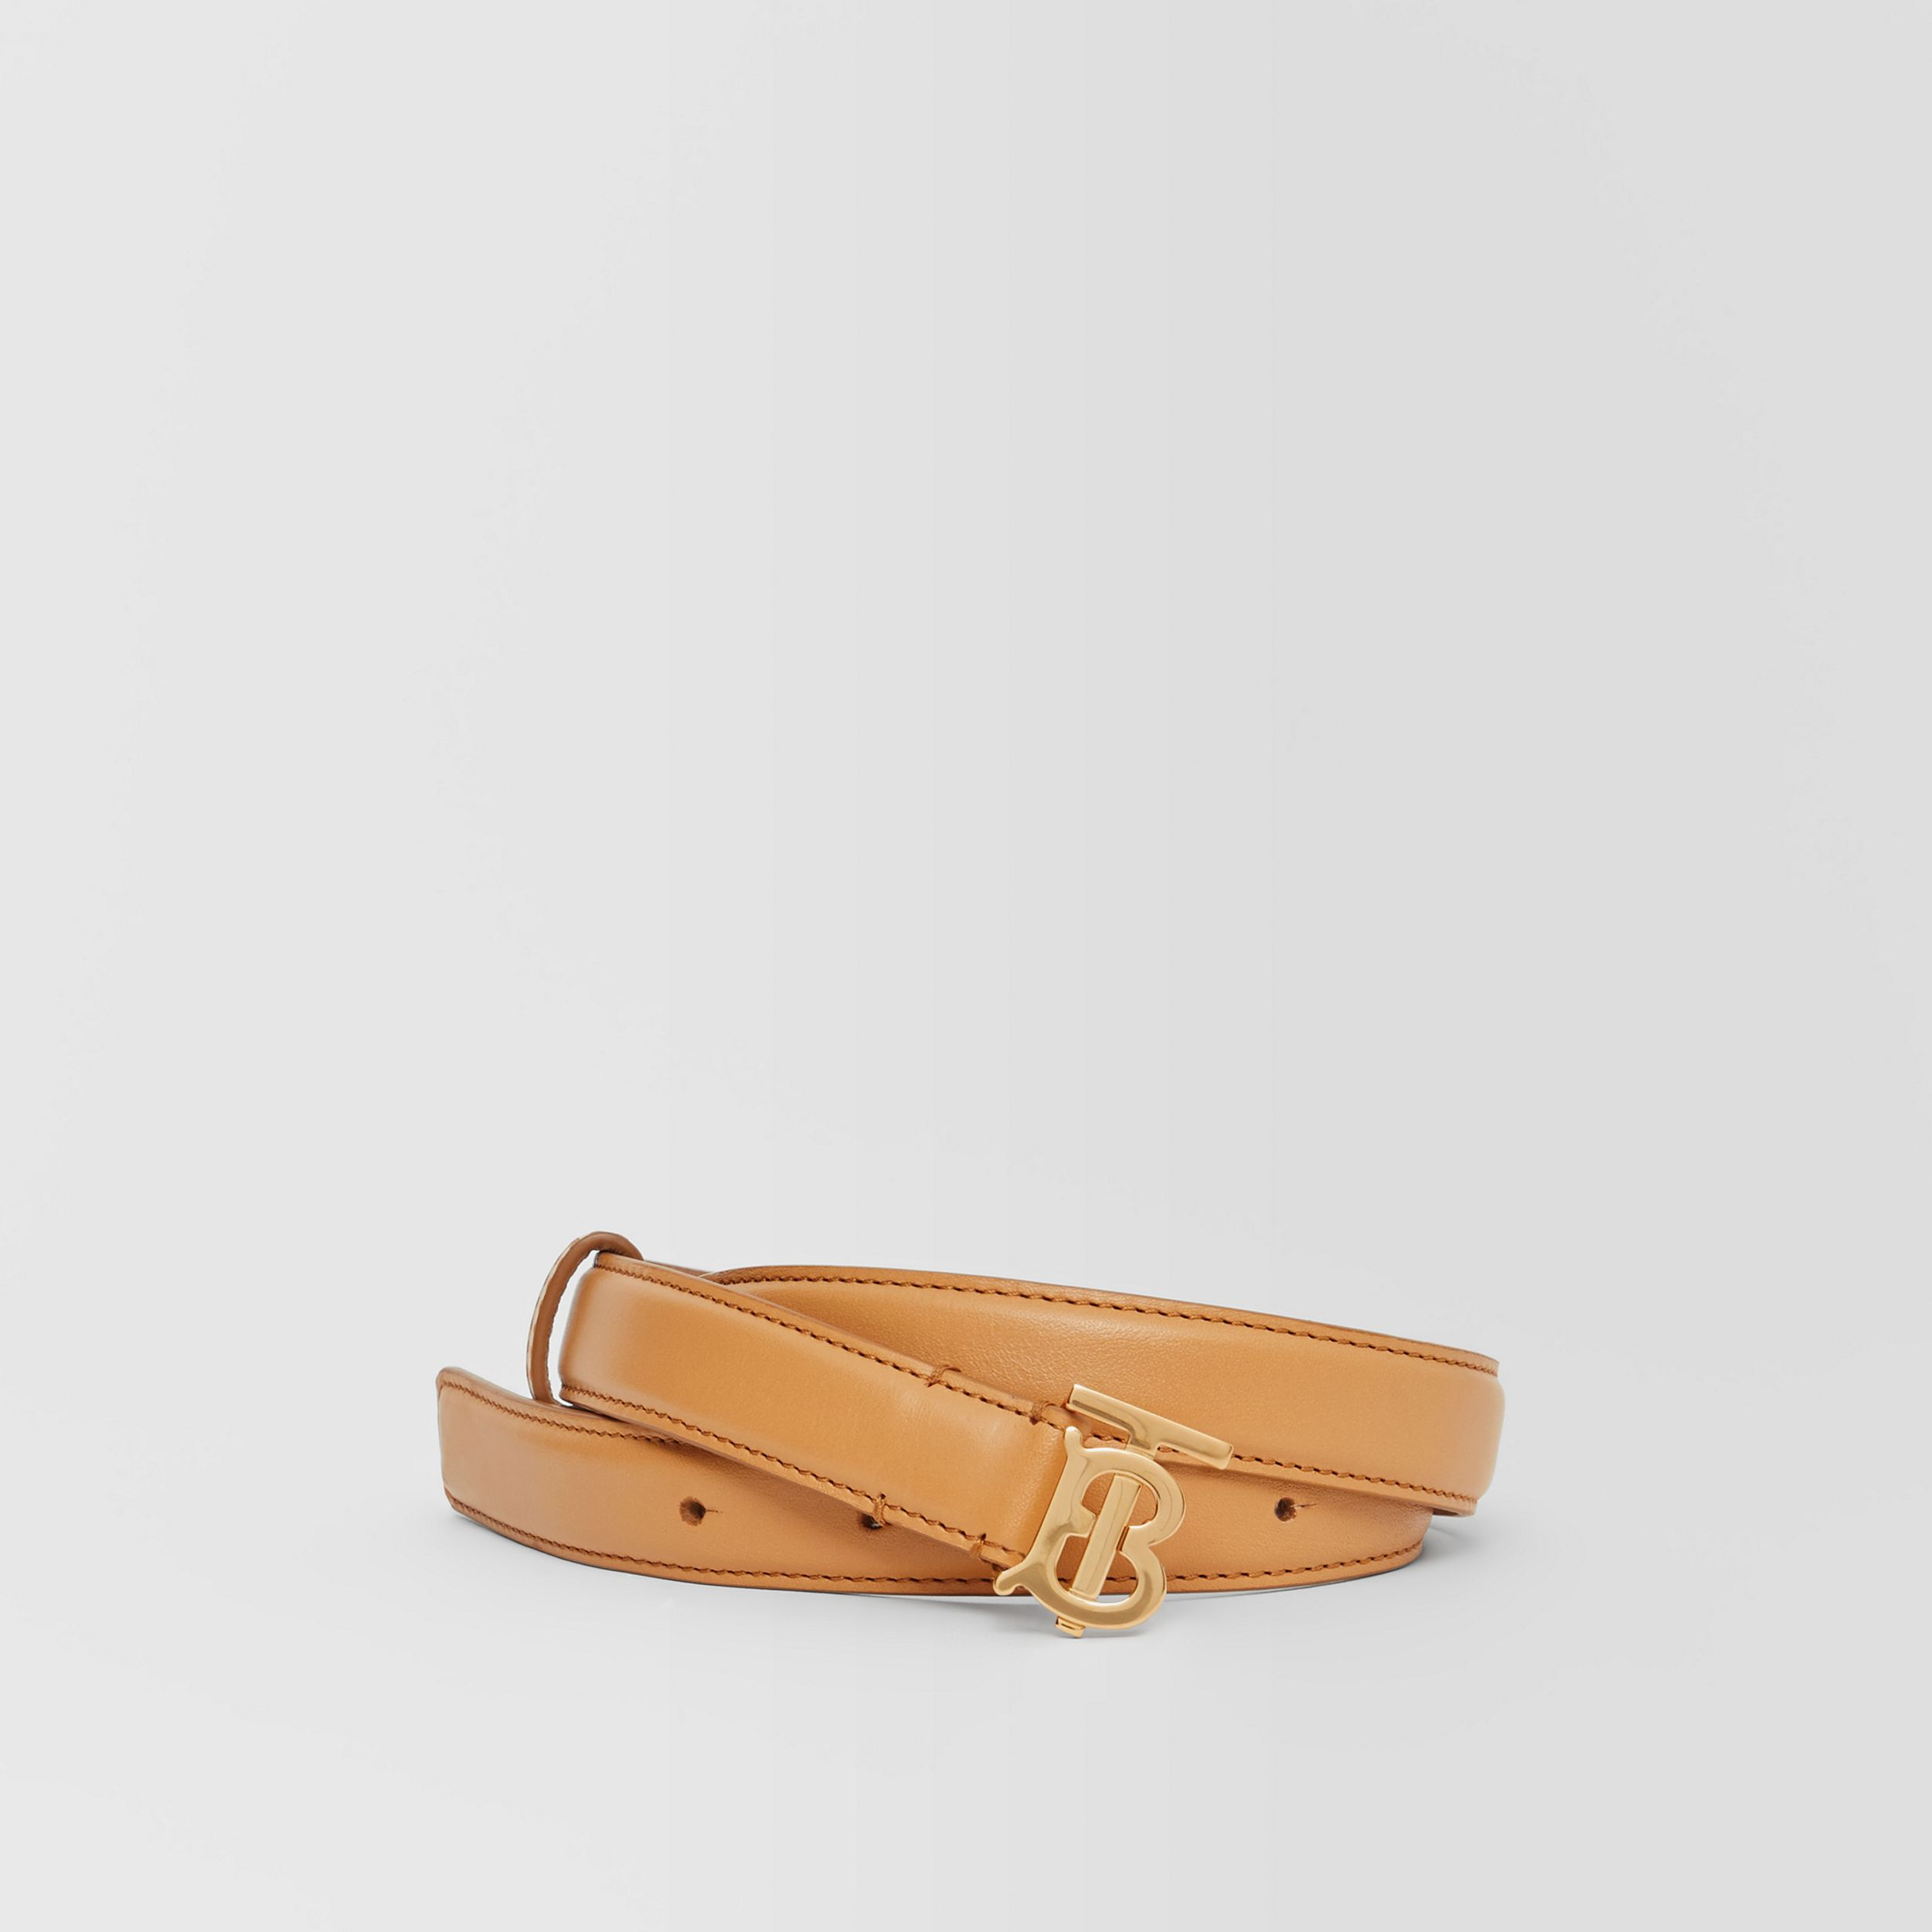 Monogram Motif Leather Belt in Warms Sand - Women | Burberry Hong Kong S.A.R. - 1